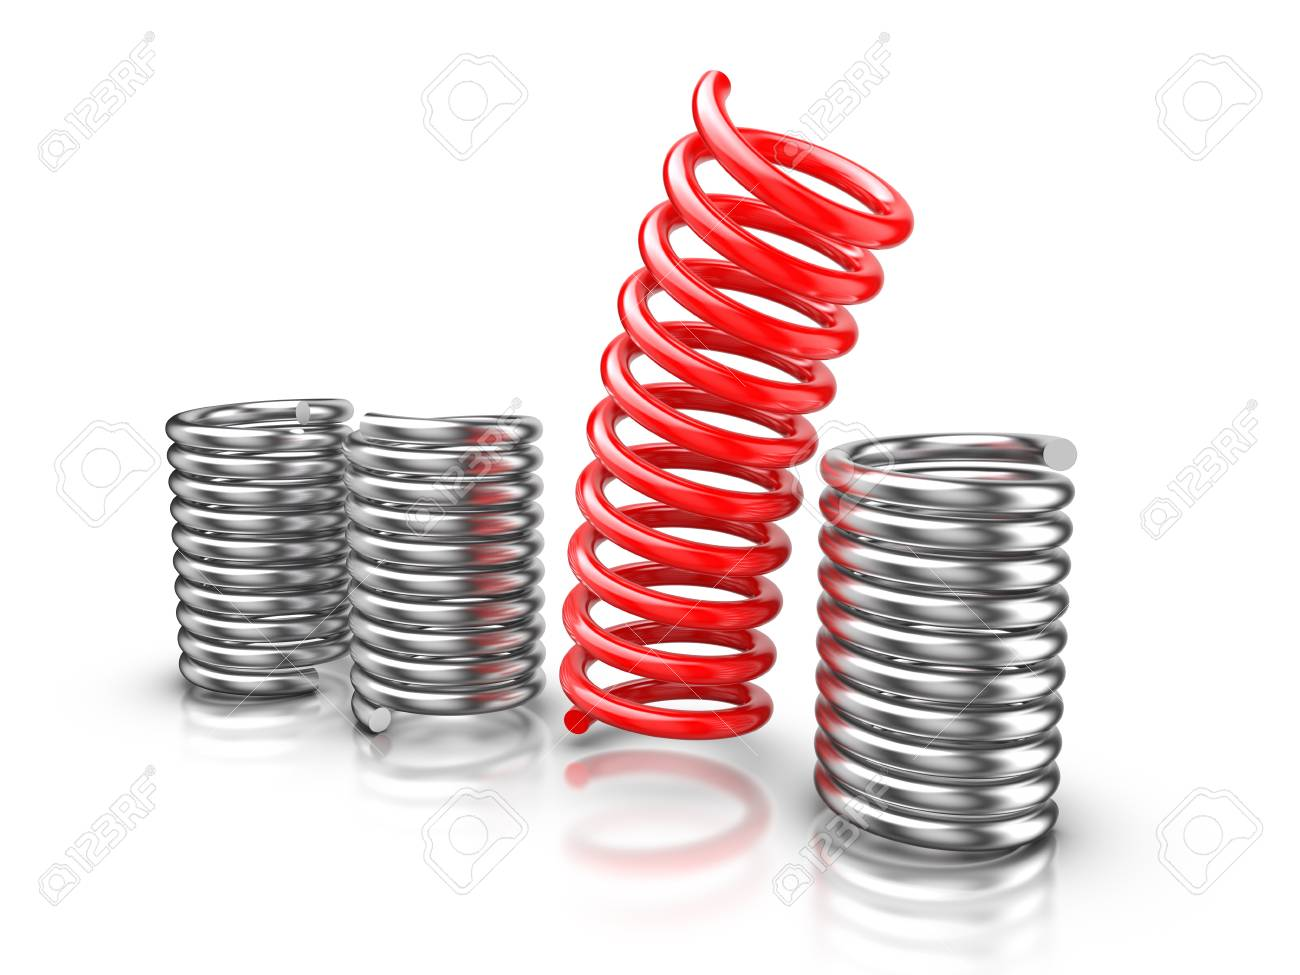 Springs isolated on white background Stock Photo - 13725804